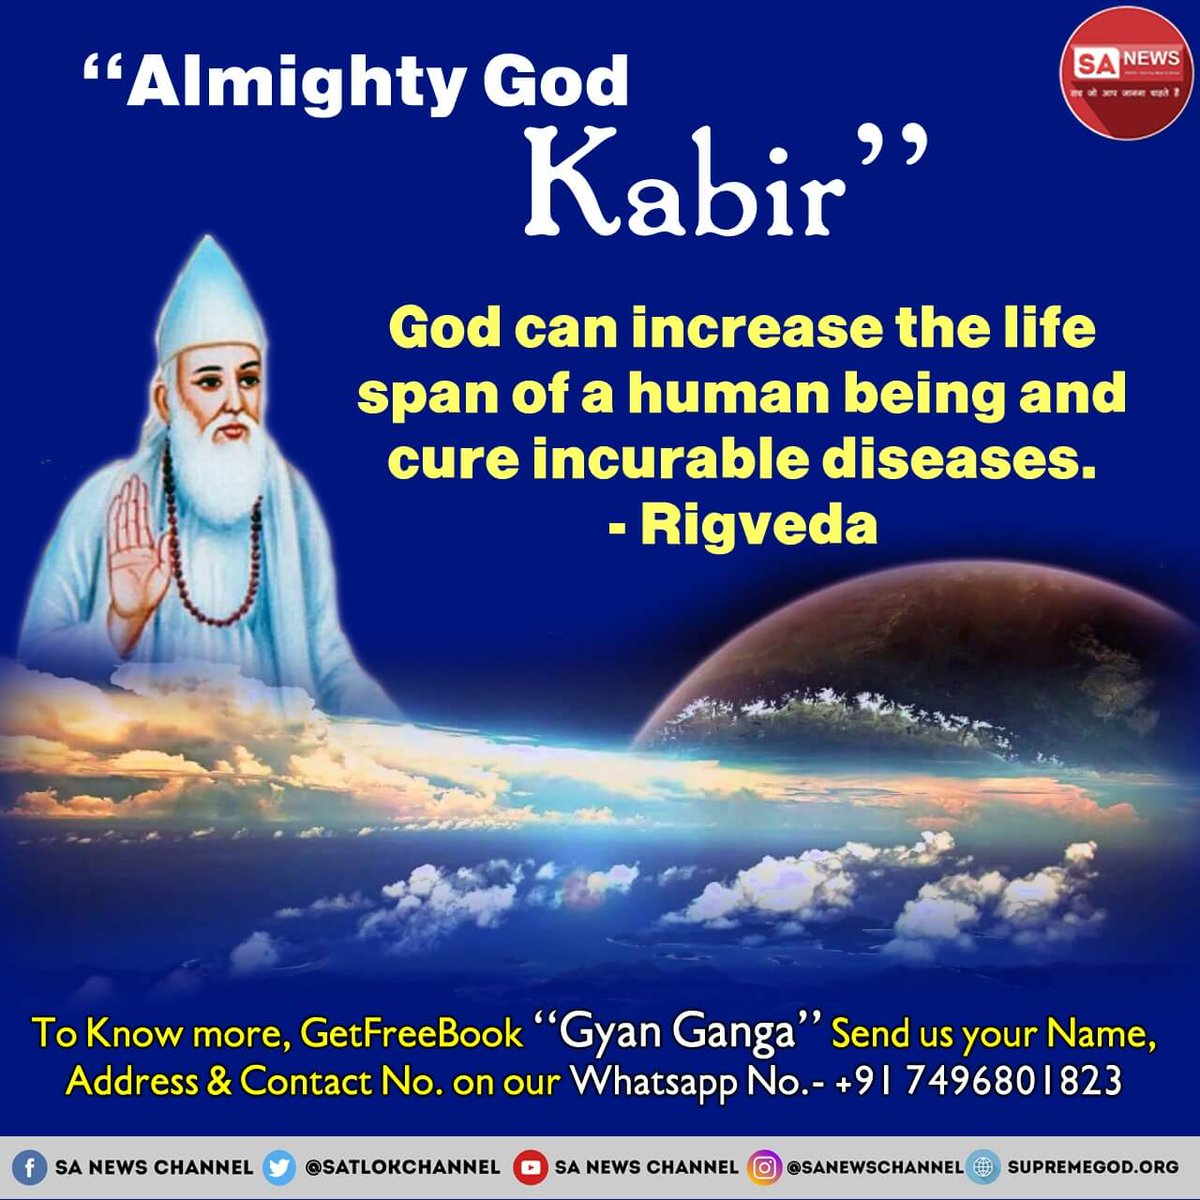 #GodIsOne_LordKabir  Almighty God Kabir is the God of Complete Salvation, for more information must watch sabhan tv channel 7:30 to 8:30. <br>http://pic.twitter.com/i9AAA9tFEu